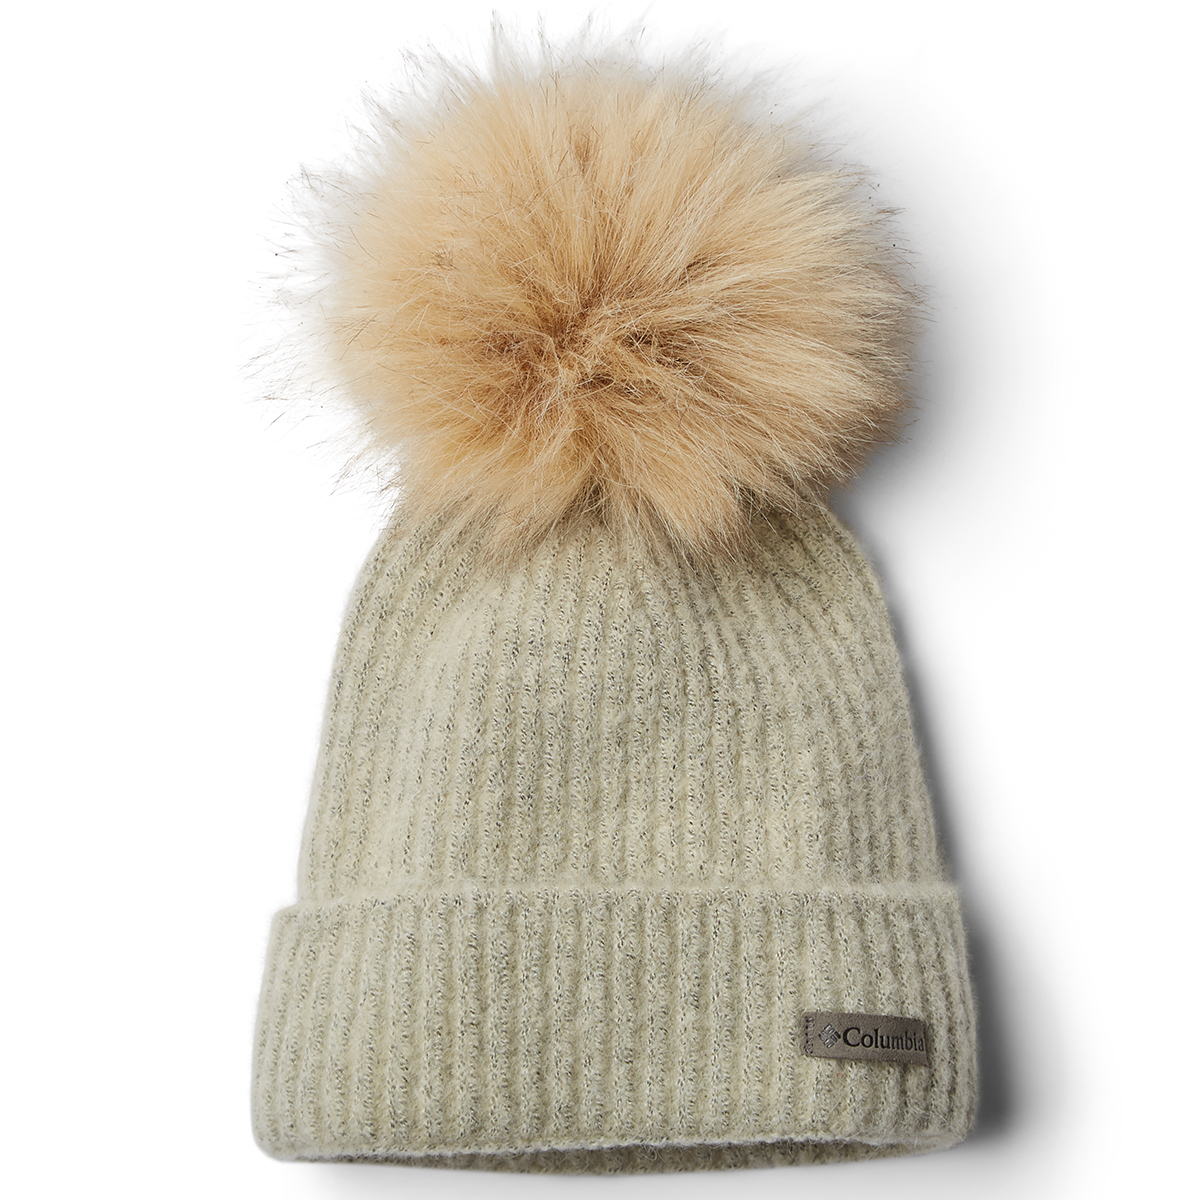 Columbia Women's Winter Blur Pom Pom Beanie - White, ONESIZE